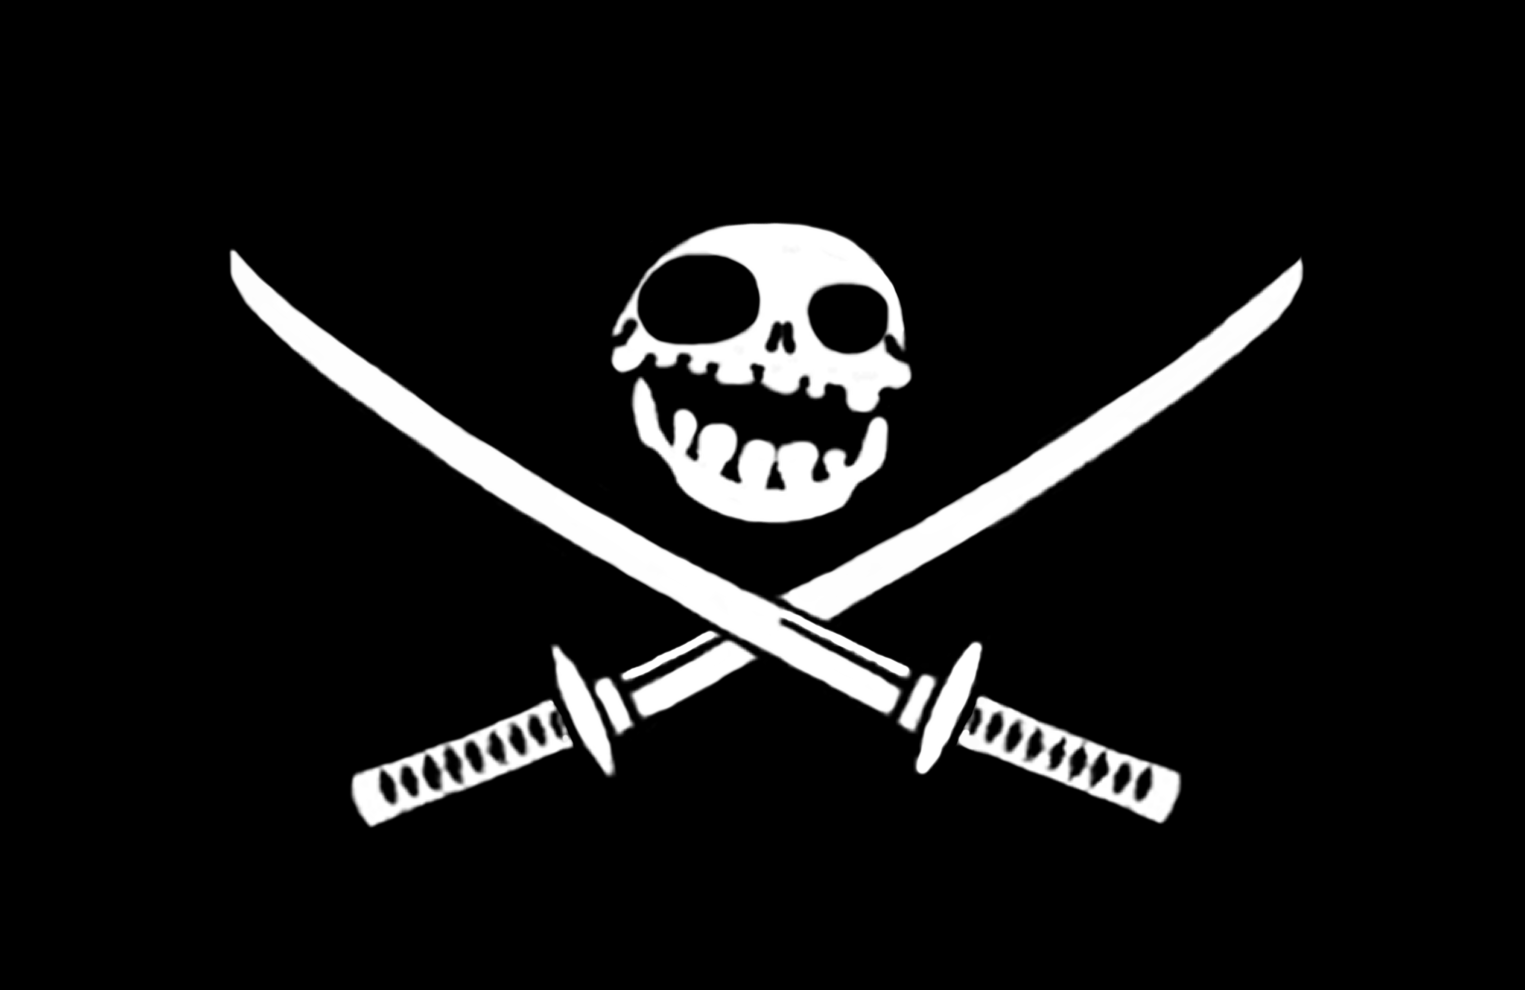 Http Fc05 Deviantart Net Fs12 I 2006 270 B F Pirate Flag By Truci Png Pirates Pirate Flag Golden Age Of Piracy